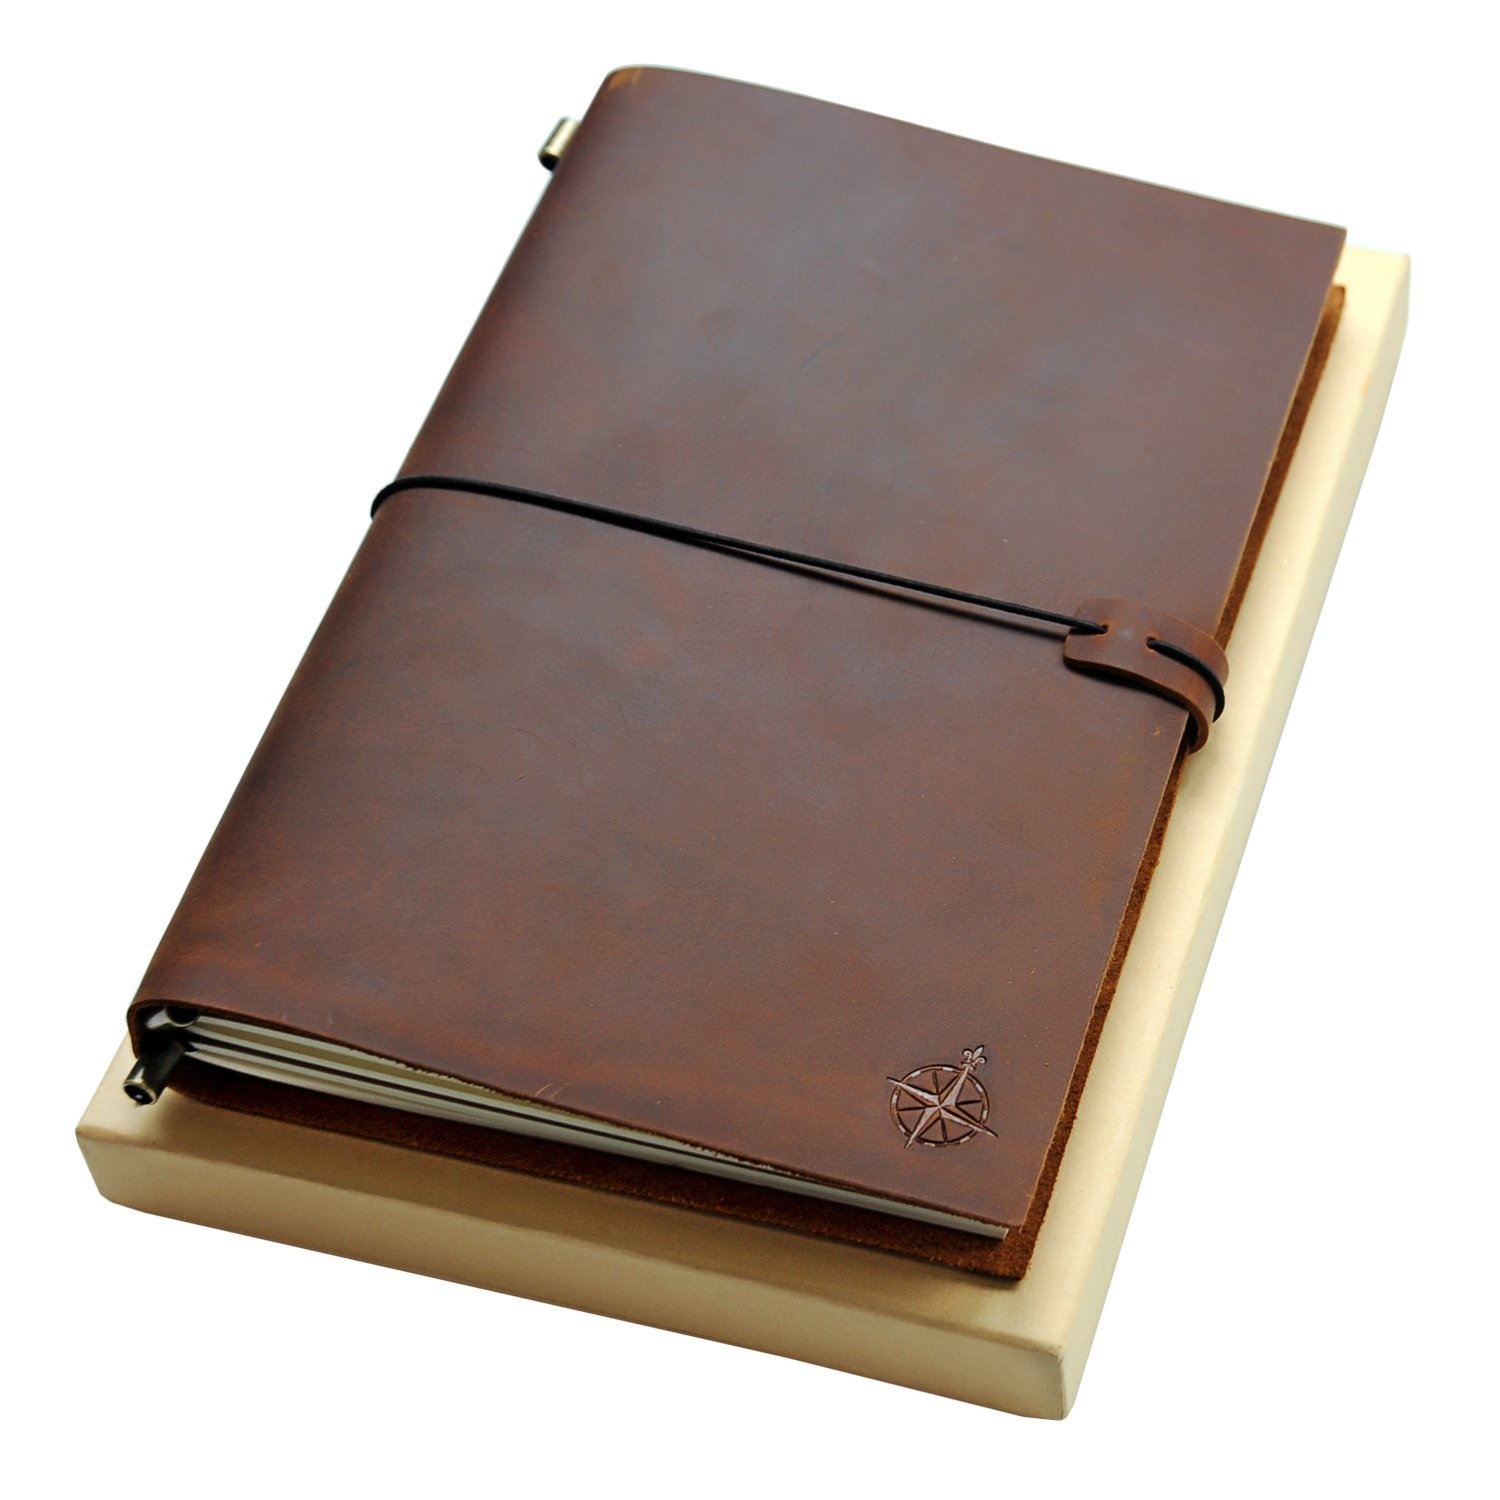 Large Leather Journal | The Wanderings Grande Refillable Travel Notebook | Perfect for Writing, Sketching, Scrapbooks, Travelers, Extra Large | Blank Inserts 11x7.5 inches by WANDERINGS